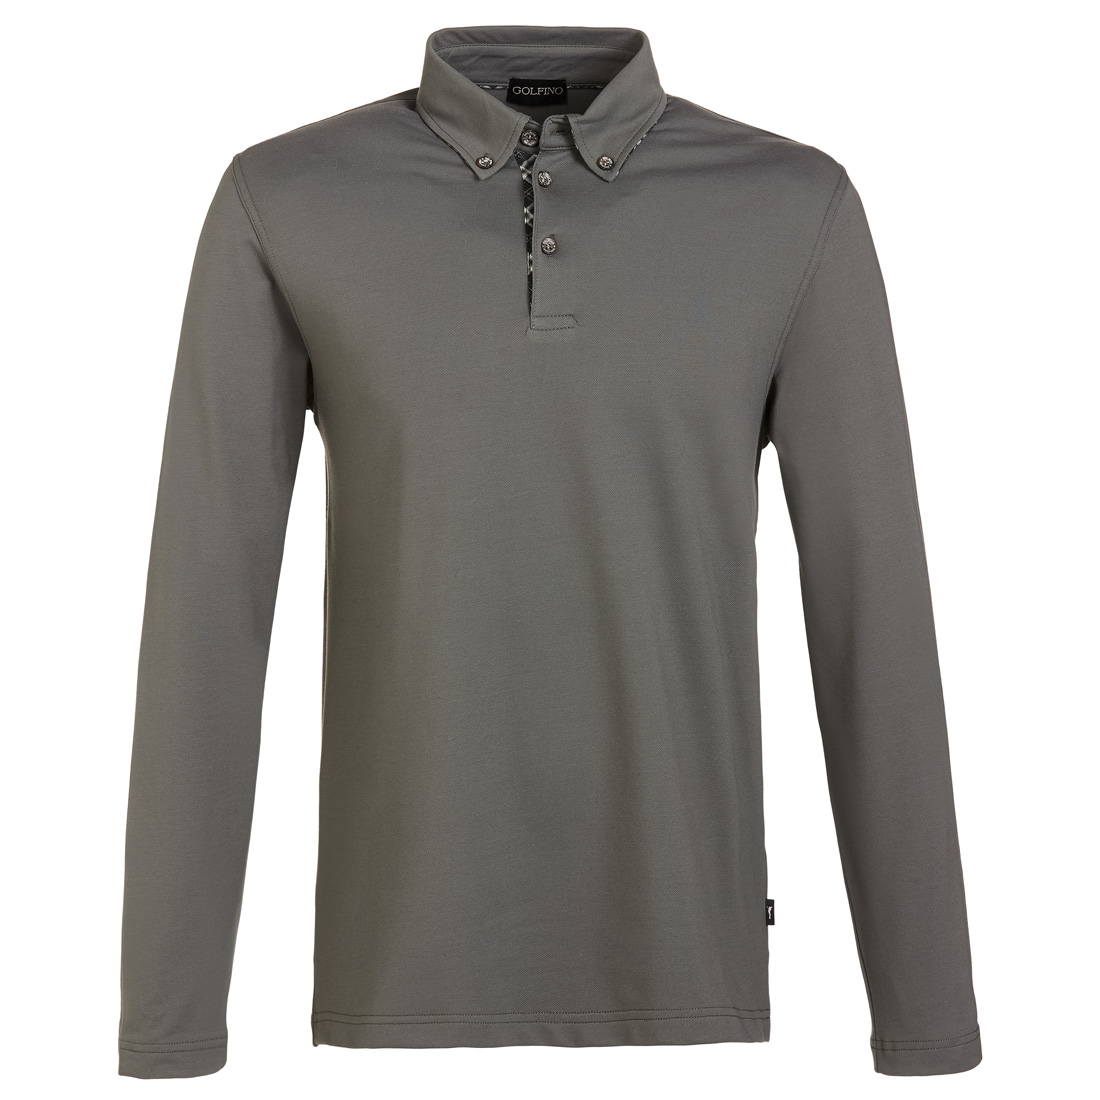 Herren Langarm Funktionsgolfpolo mit Sun Protection und Button-Down-Kragen